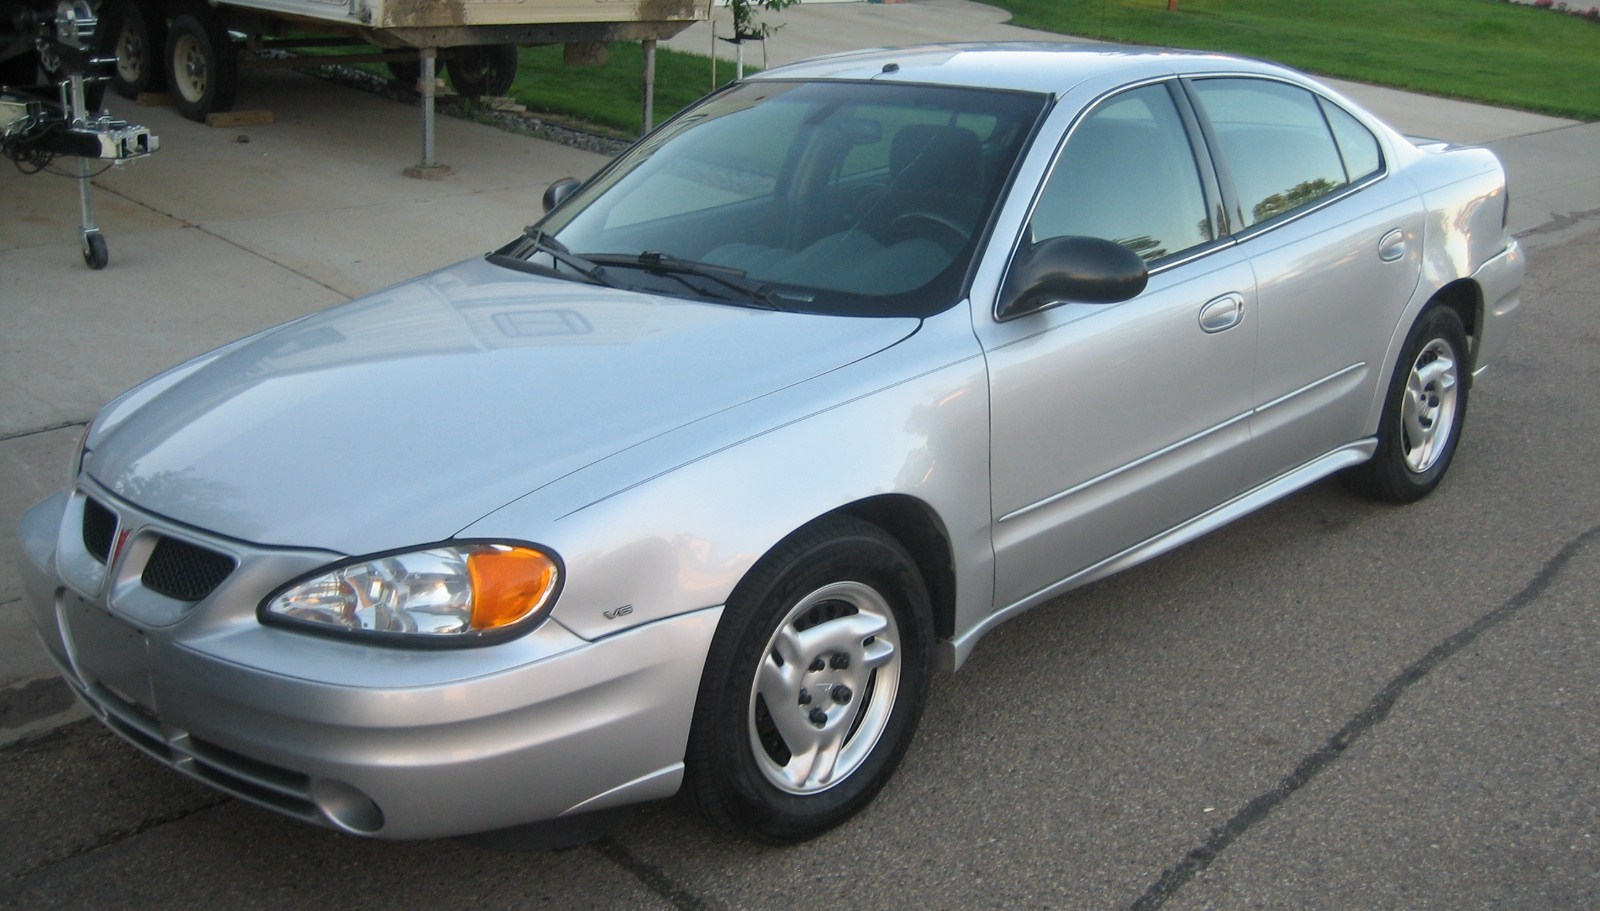 2005 Pontiac Grand Am SE picture